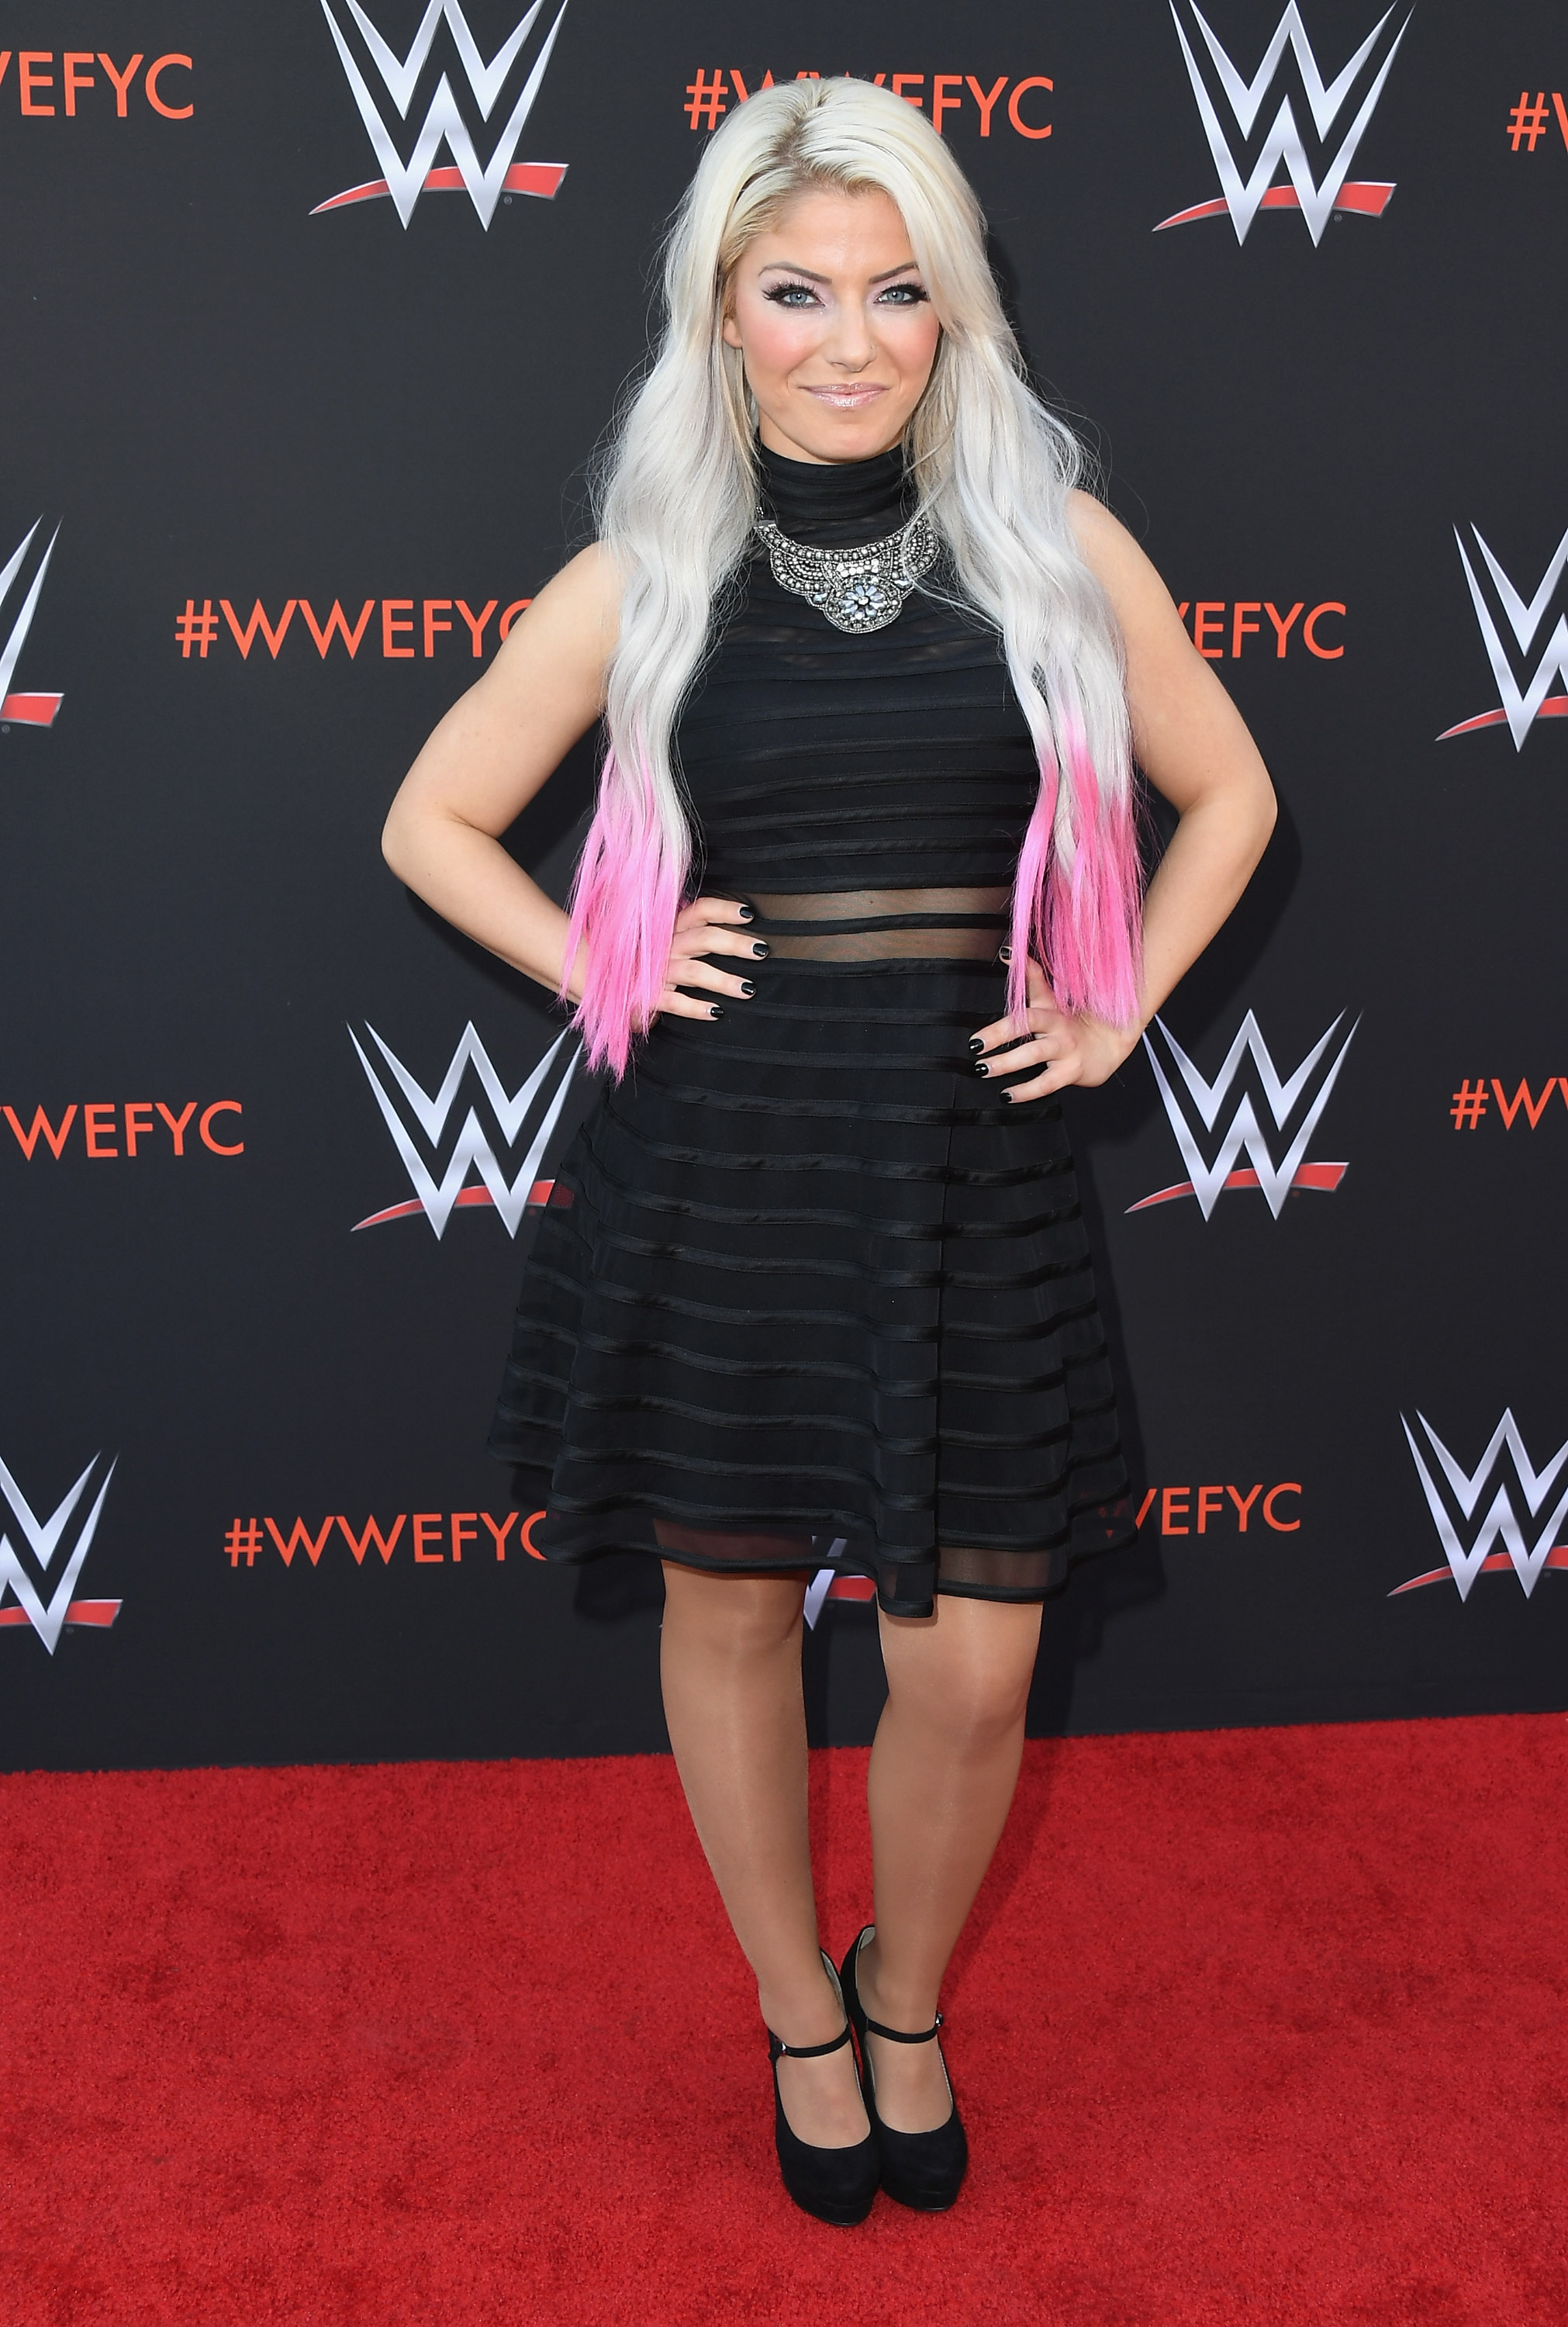 Alexa Bliss attends WWE's First-Ever Emmy 'For Your Consideration' Event at Saban Media Center on June 6, 2018 in North Hollywood, California. (Getty Images)